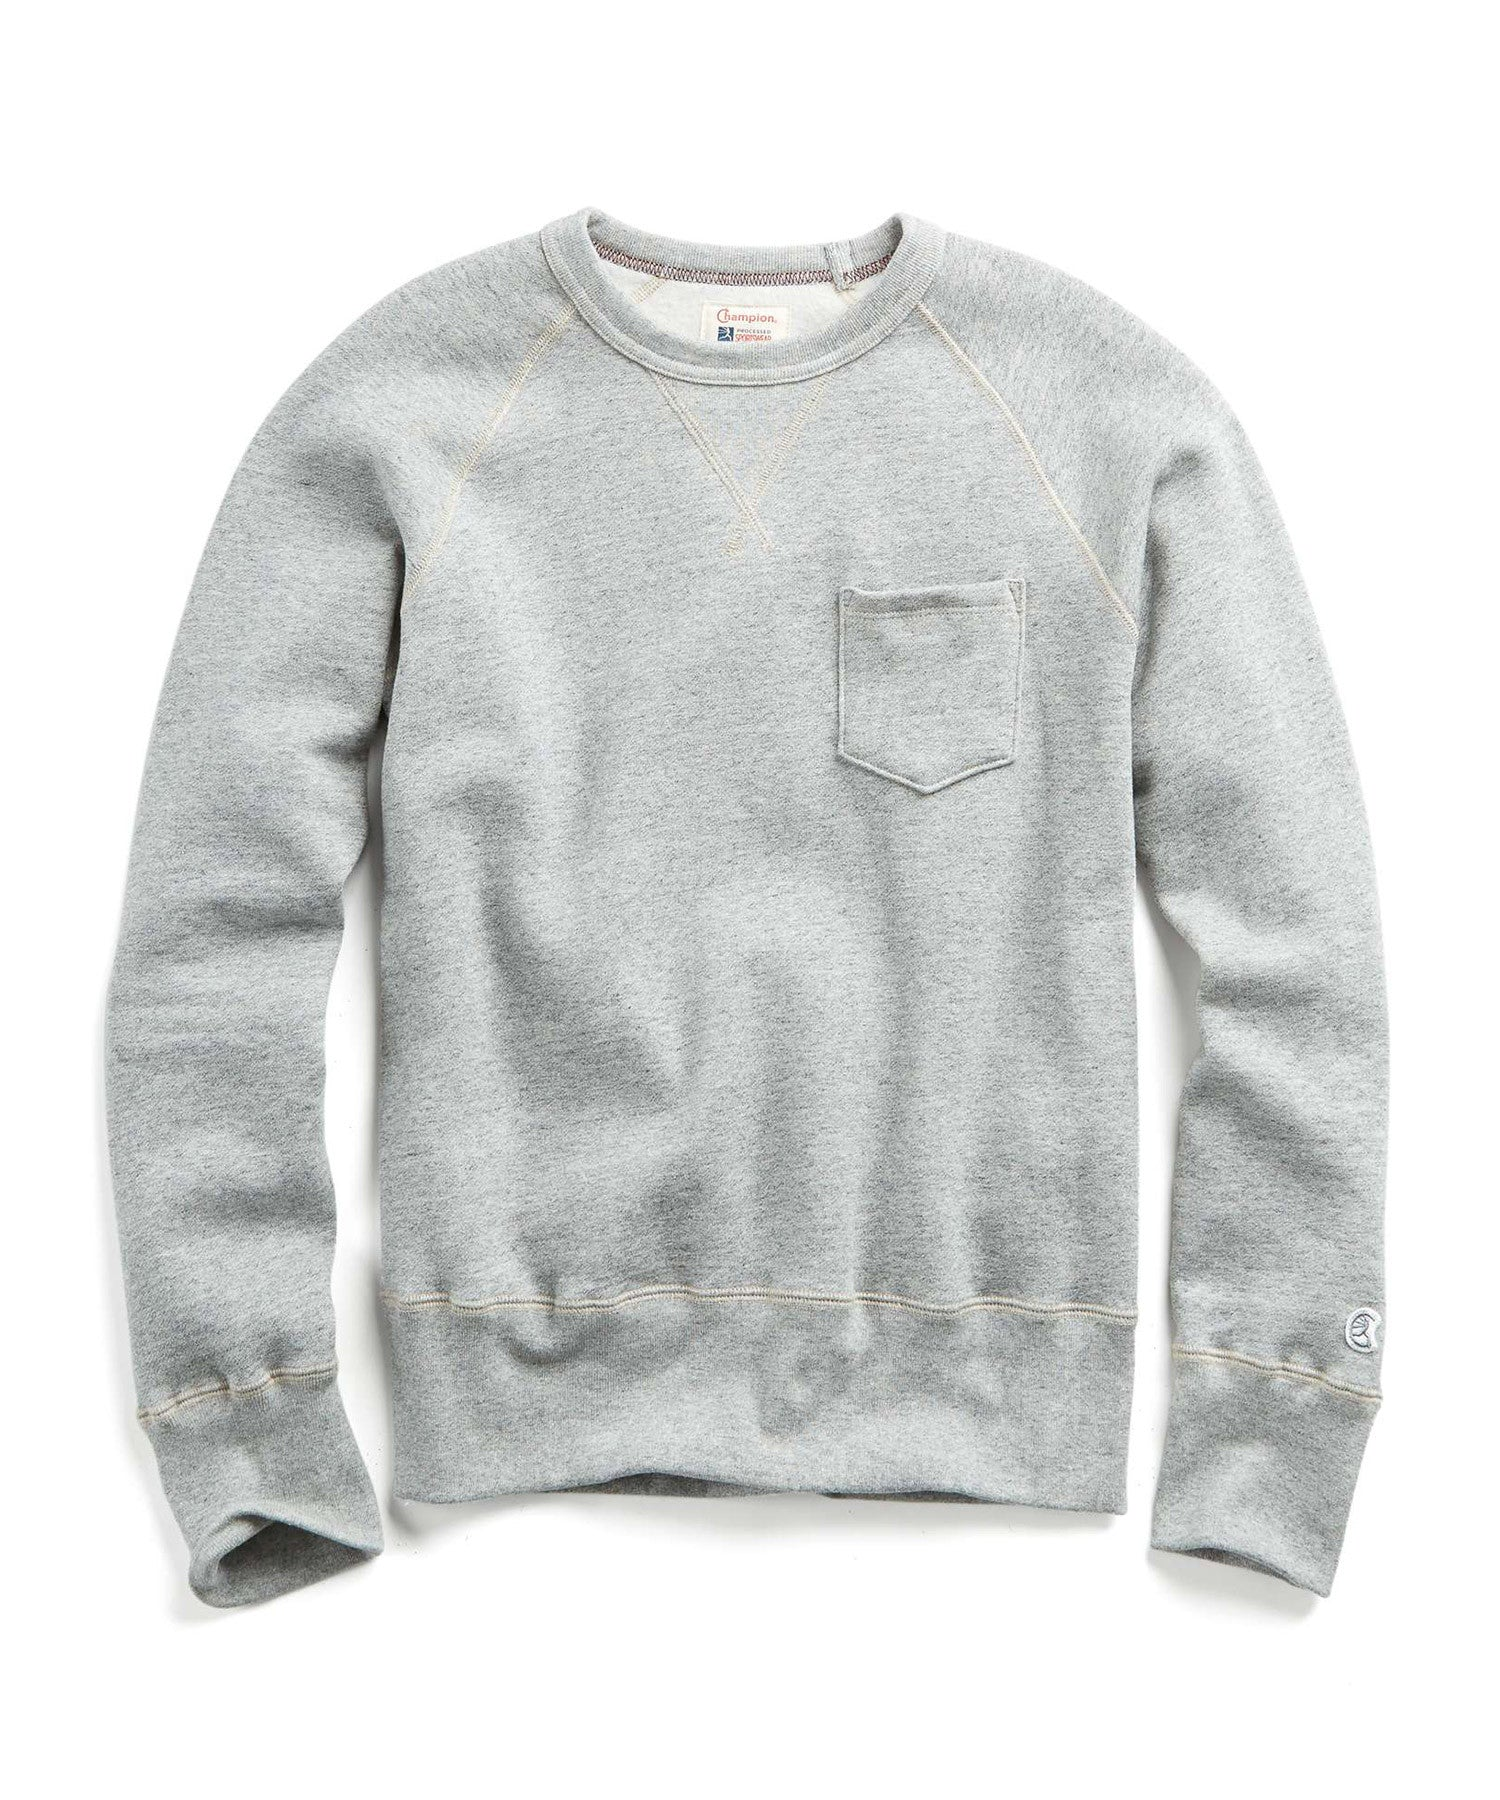 Fleece Pocket Sweatshirt in Light Grey Mix